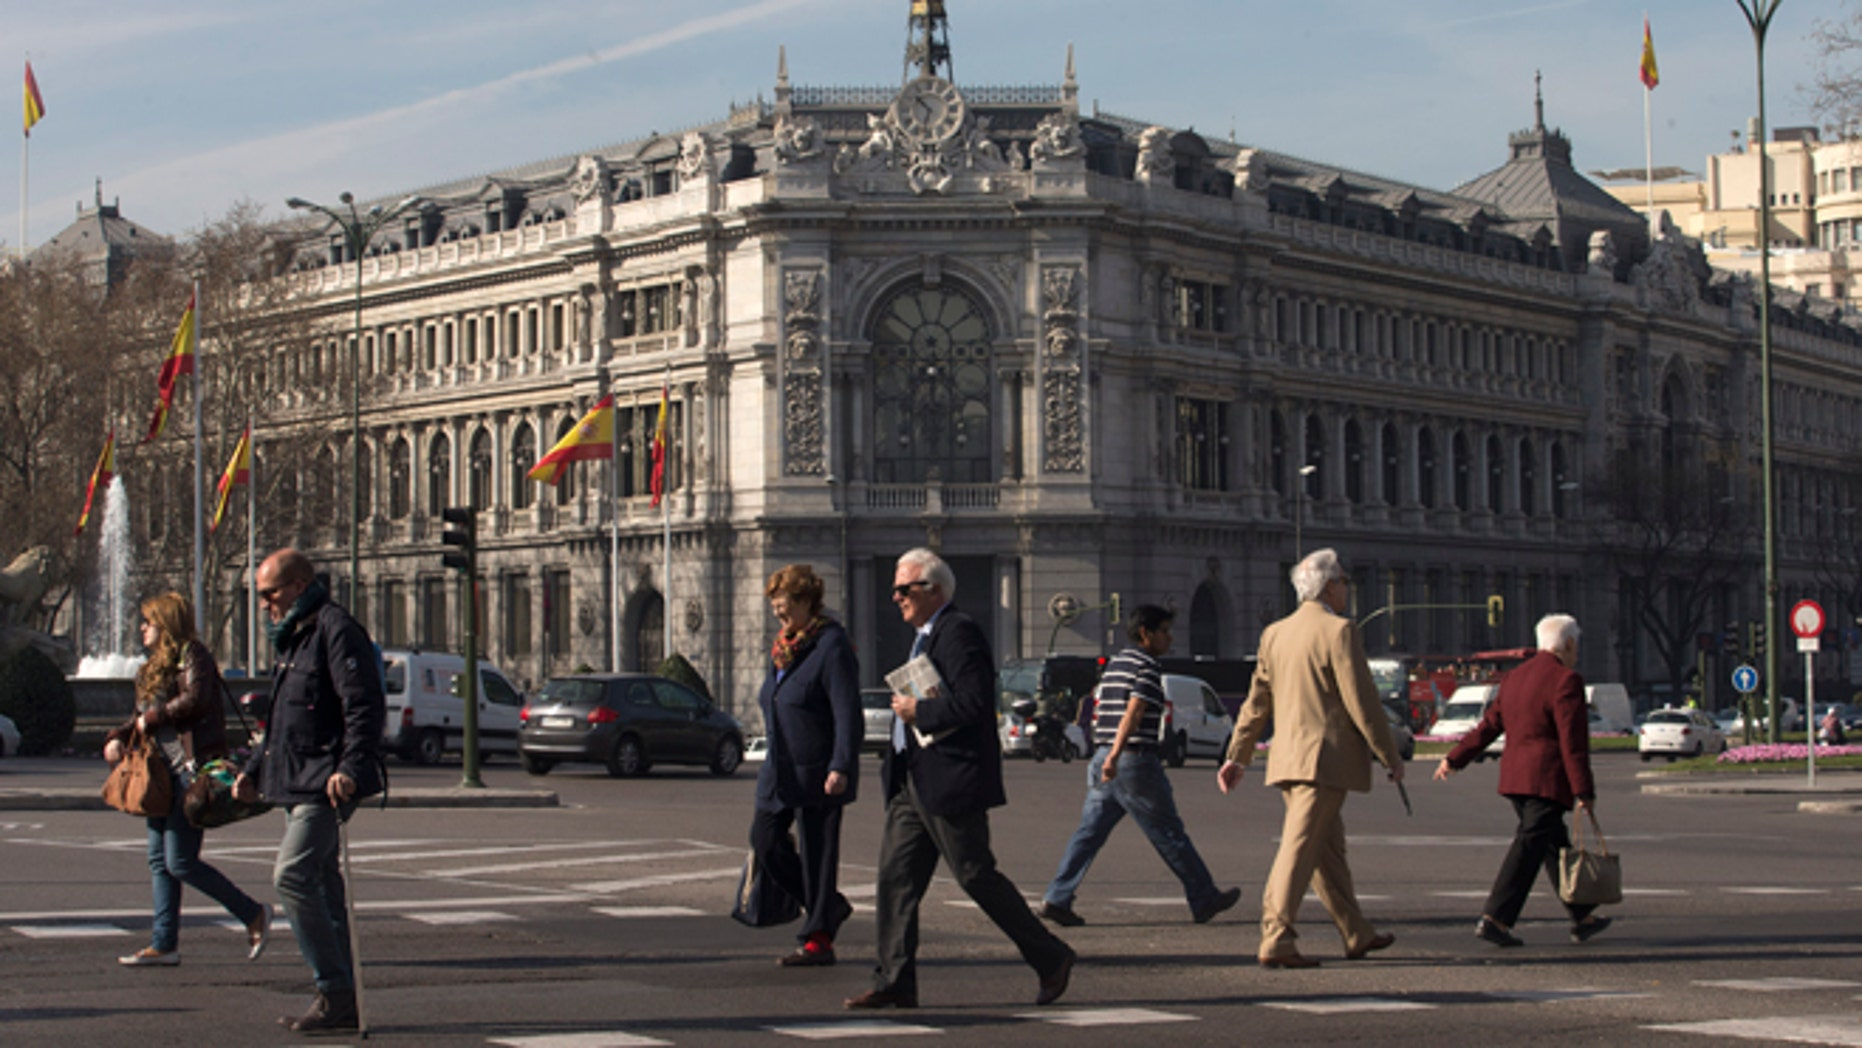 People cross the street in front of Spain's Central Bank in Madrid, Spain, Thursday, March 12, 2015. The entire board of Spainâs Banco de Madrid bank catering to wealthy clients has resigned after its Andorran owner was accused by the U.S. of money laundering for clients from China, Russia and Venezuela, Banco de Madrid said Thursday. (AP Photo/Paul White)